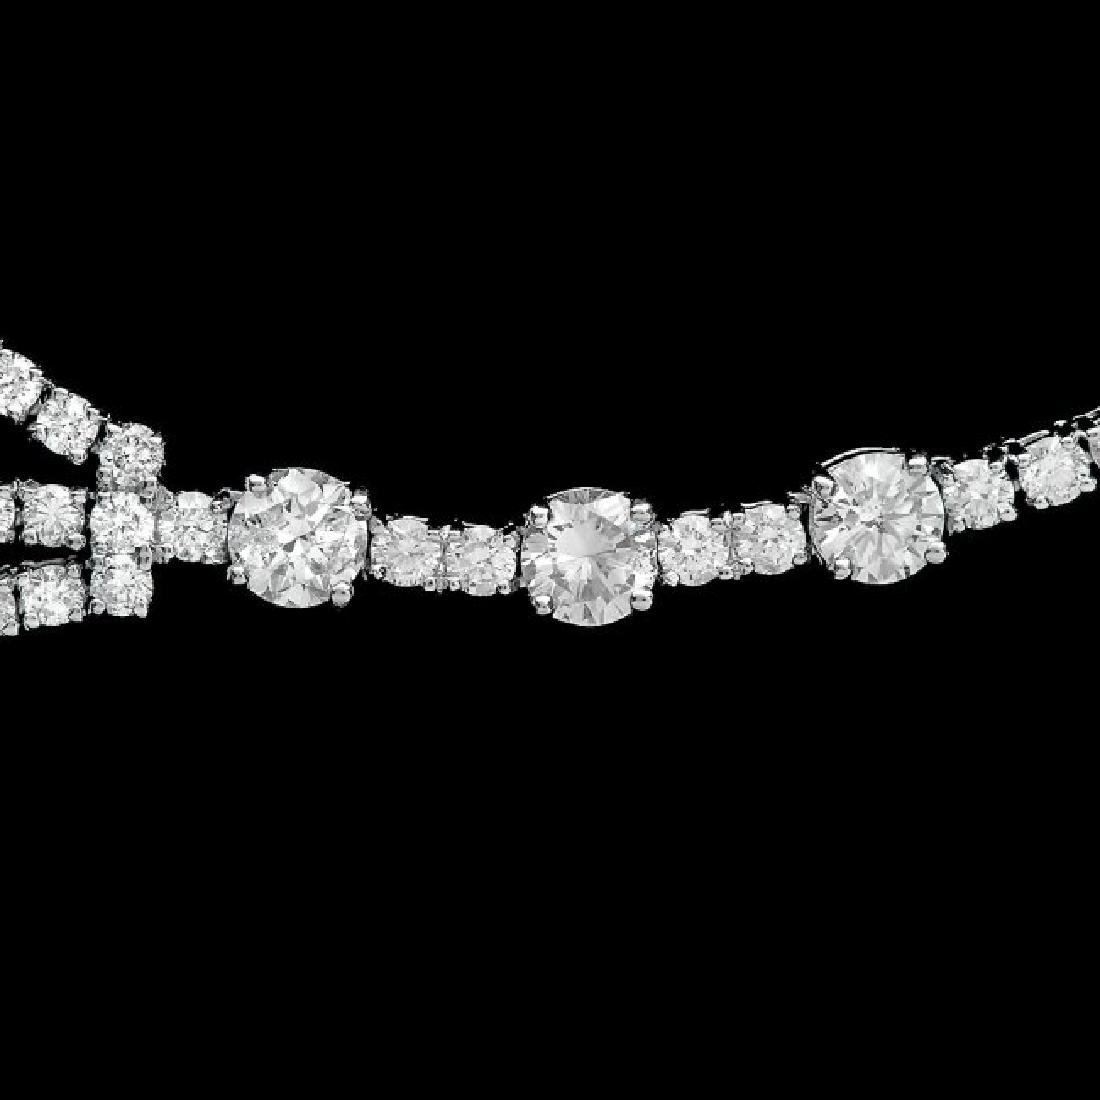 18k White Gold 12.90ct Diamond Necklace - 4